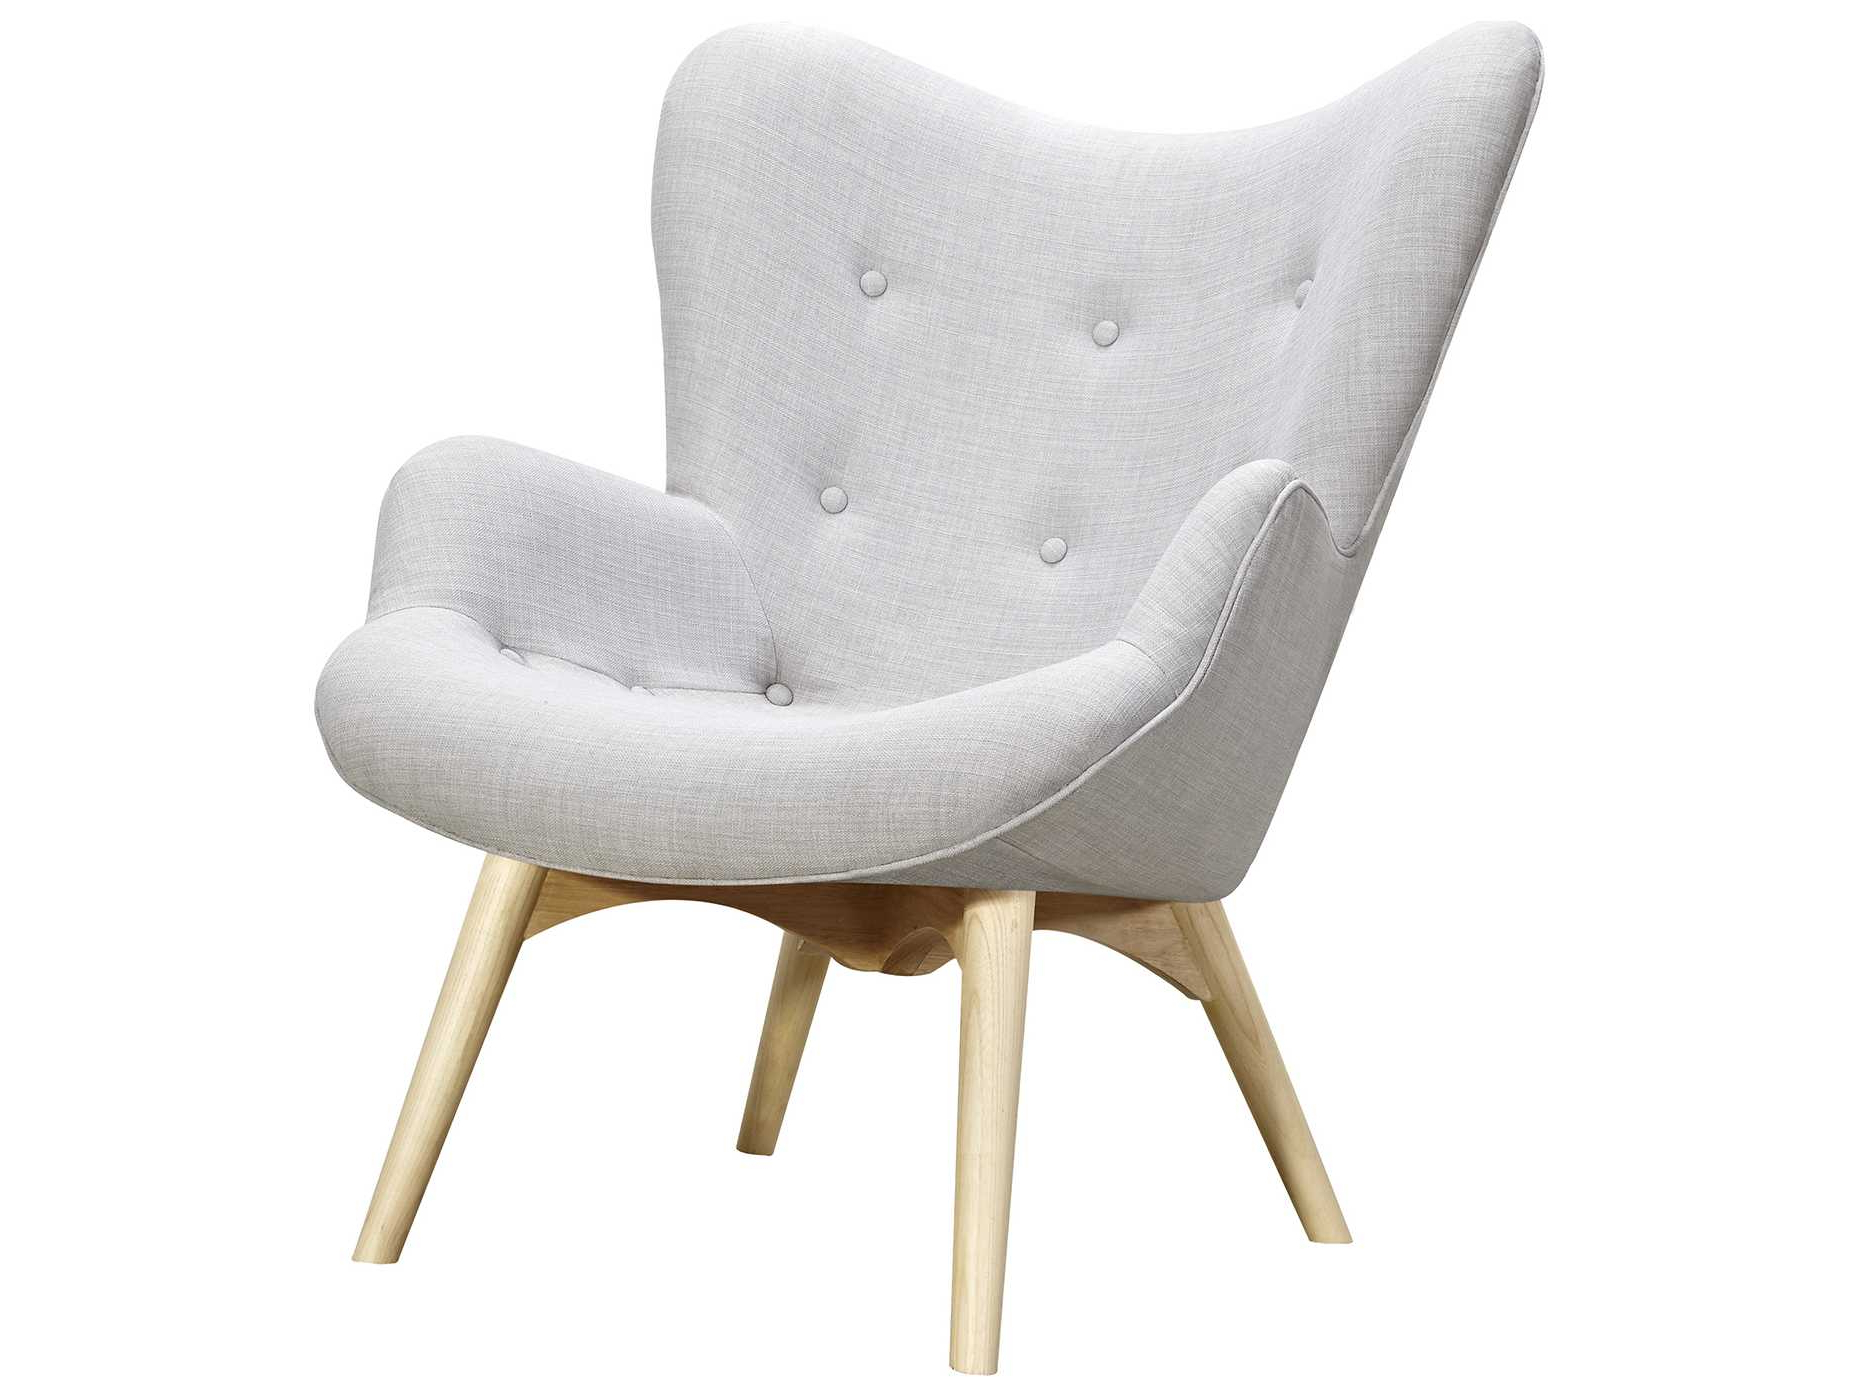 Most Current Aidan Ii Swivel Accent Chairs Pertaining To Nyekoncept Aiden Glacier White Accent Chair & Ottoman With Natural (Gallery 16 of 20)